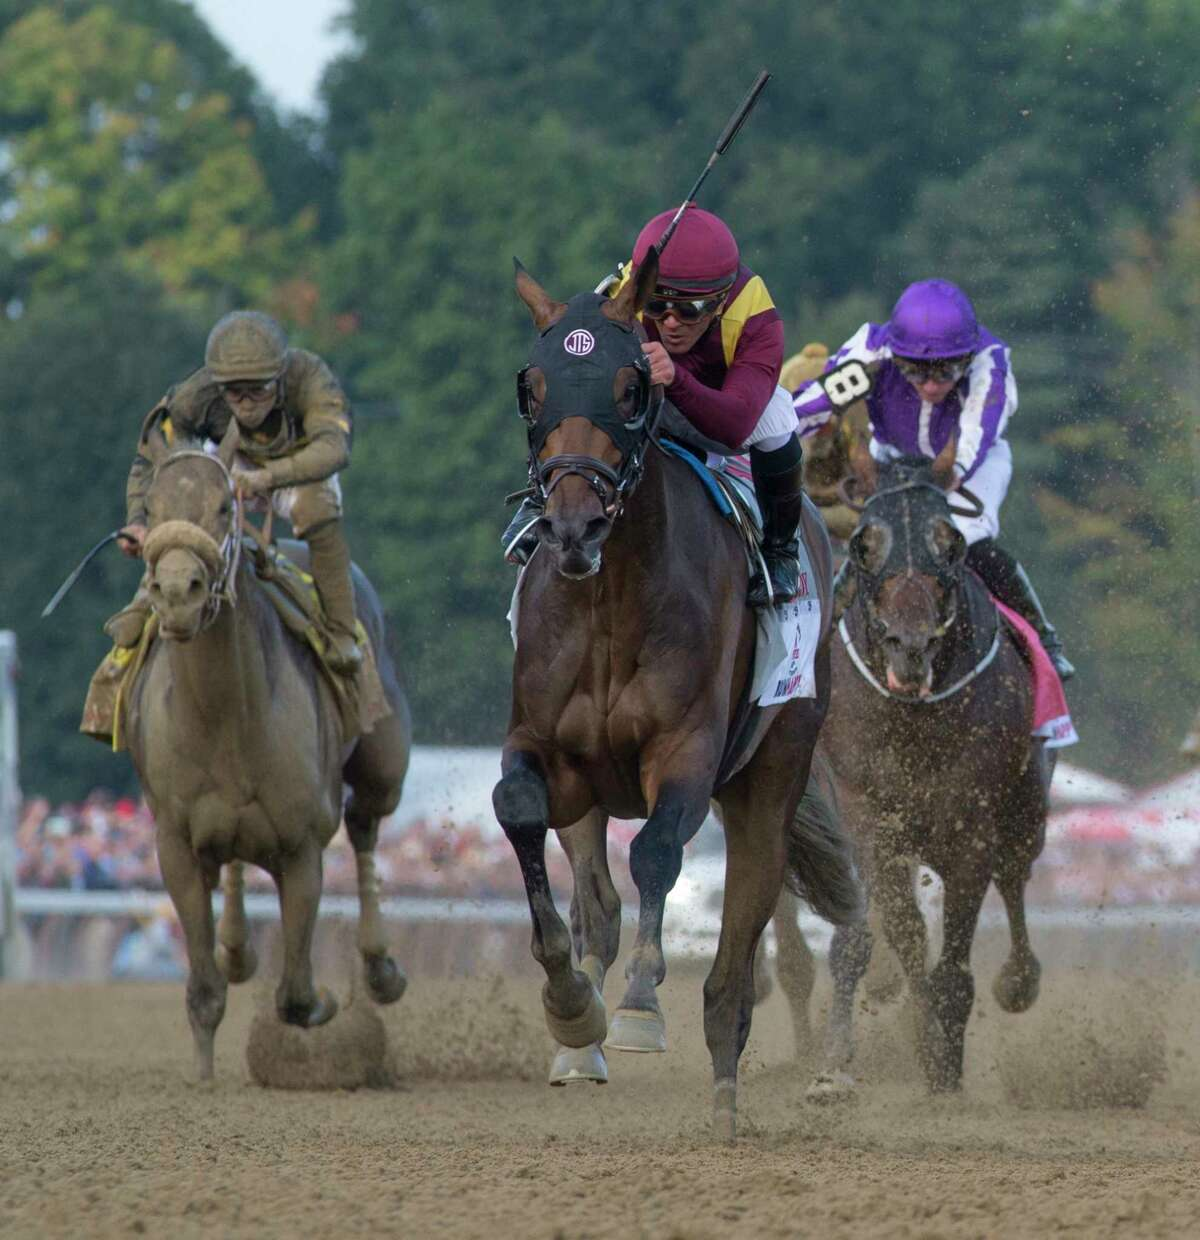 Catholic Boy with jockey Javier Castellano wins the 149th running of the Runhappy Travers Stakes and his sixth personal victory in the race at the Saratoga Race Course Saturday Aug. 25, 2018 in Saratoga Springs, N.Y. (Skip Dickstein/Times Union)